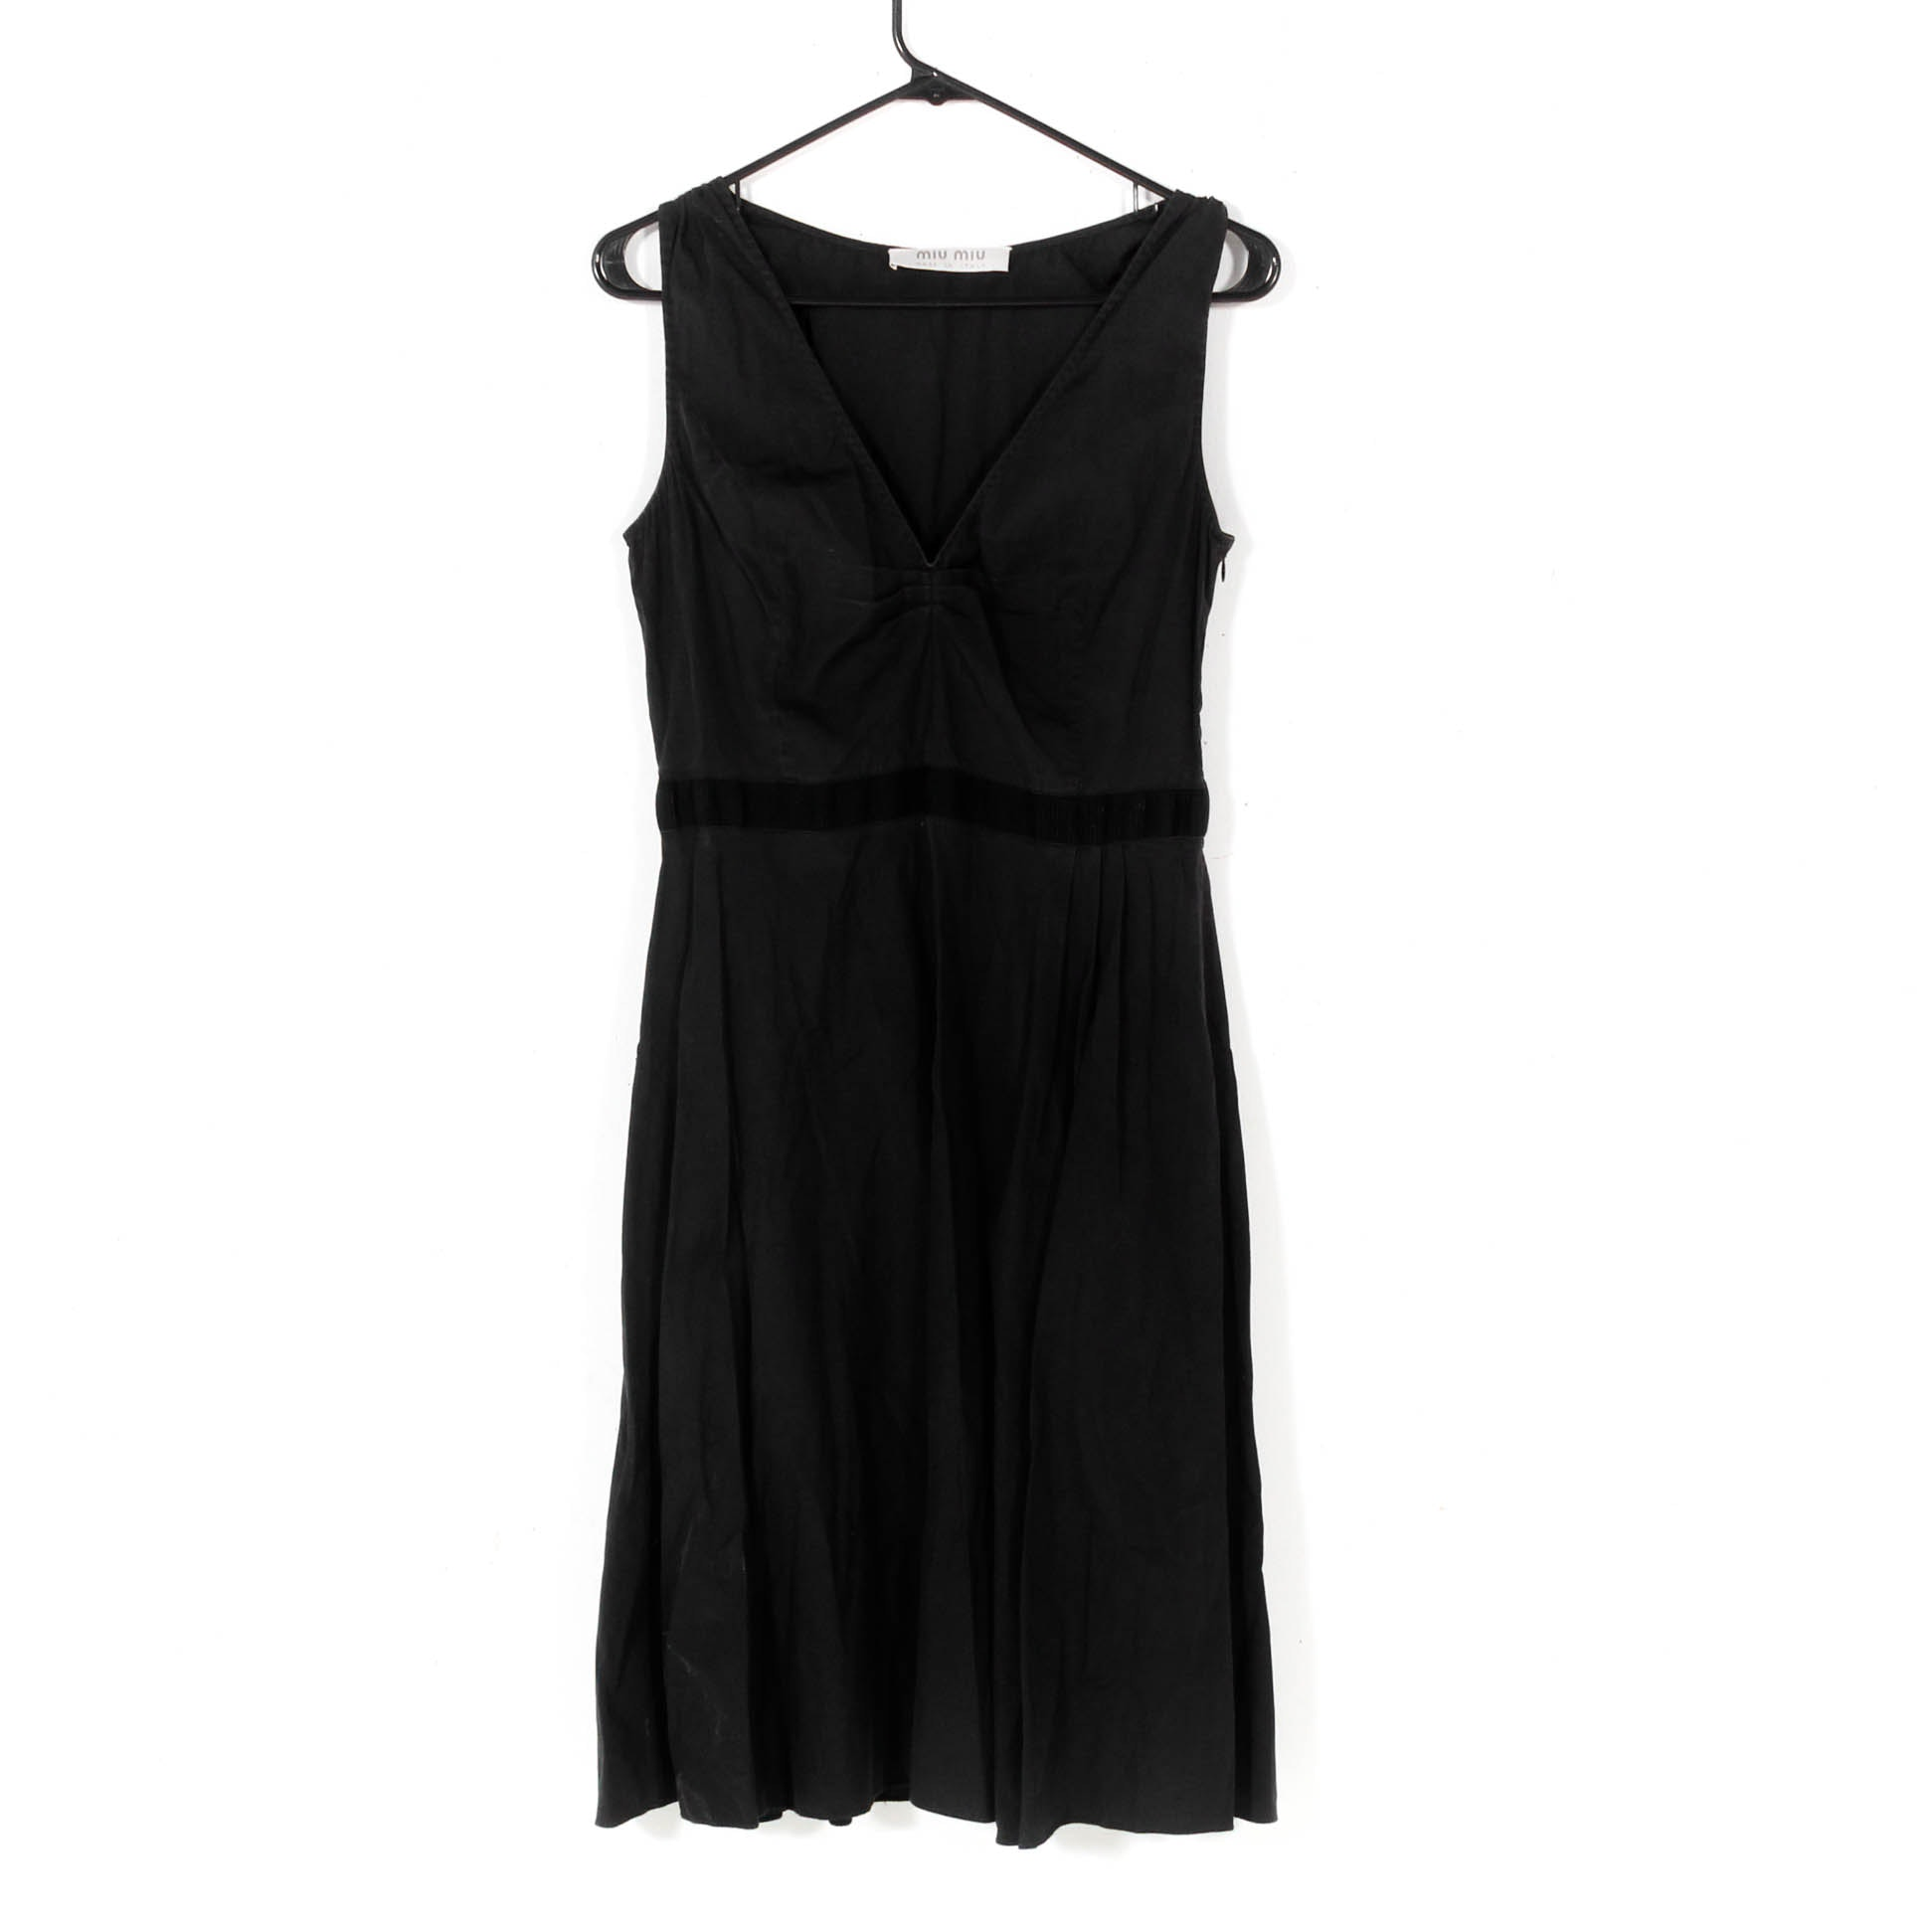 Women's Miu Miu Black Cotton Sleeveless Dress, Made in Italy